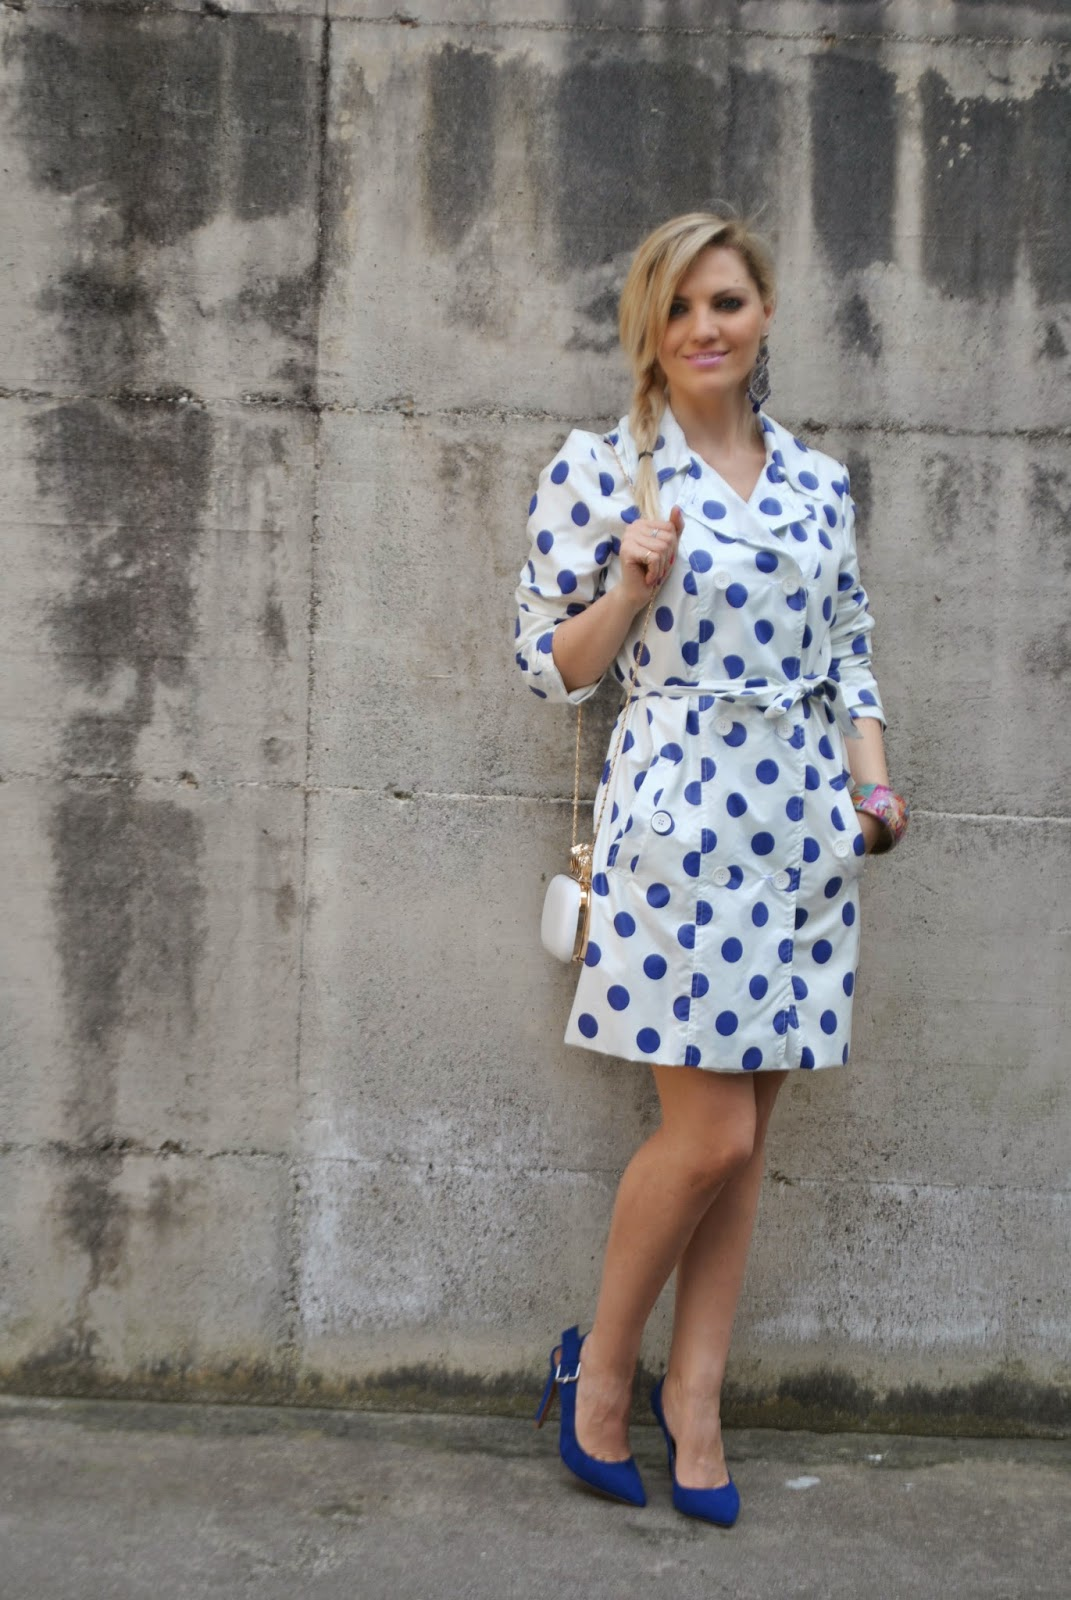 outfit trench trench a pois outfit blu outfit bianco mariafelicia magno colorblock by felym mariafelicia magno fashion blogger come abbinare la stampa pois come abbinare le scarpe blu come abbinare la borsa bianca outfit bianco e blu come abbinare il trench how to wear trench polka dots fattori abbigliamento fattori maurizio fattori come indossare il trench acconciatura treccia laterale fashion blogger italiane ragazze bionde blonde hair blonde girl fashion bloggers italy how to wear white bag how to wear polka dots how to wear blue heels